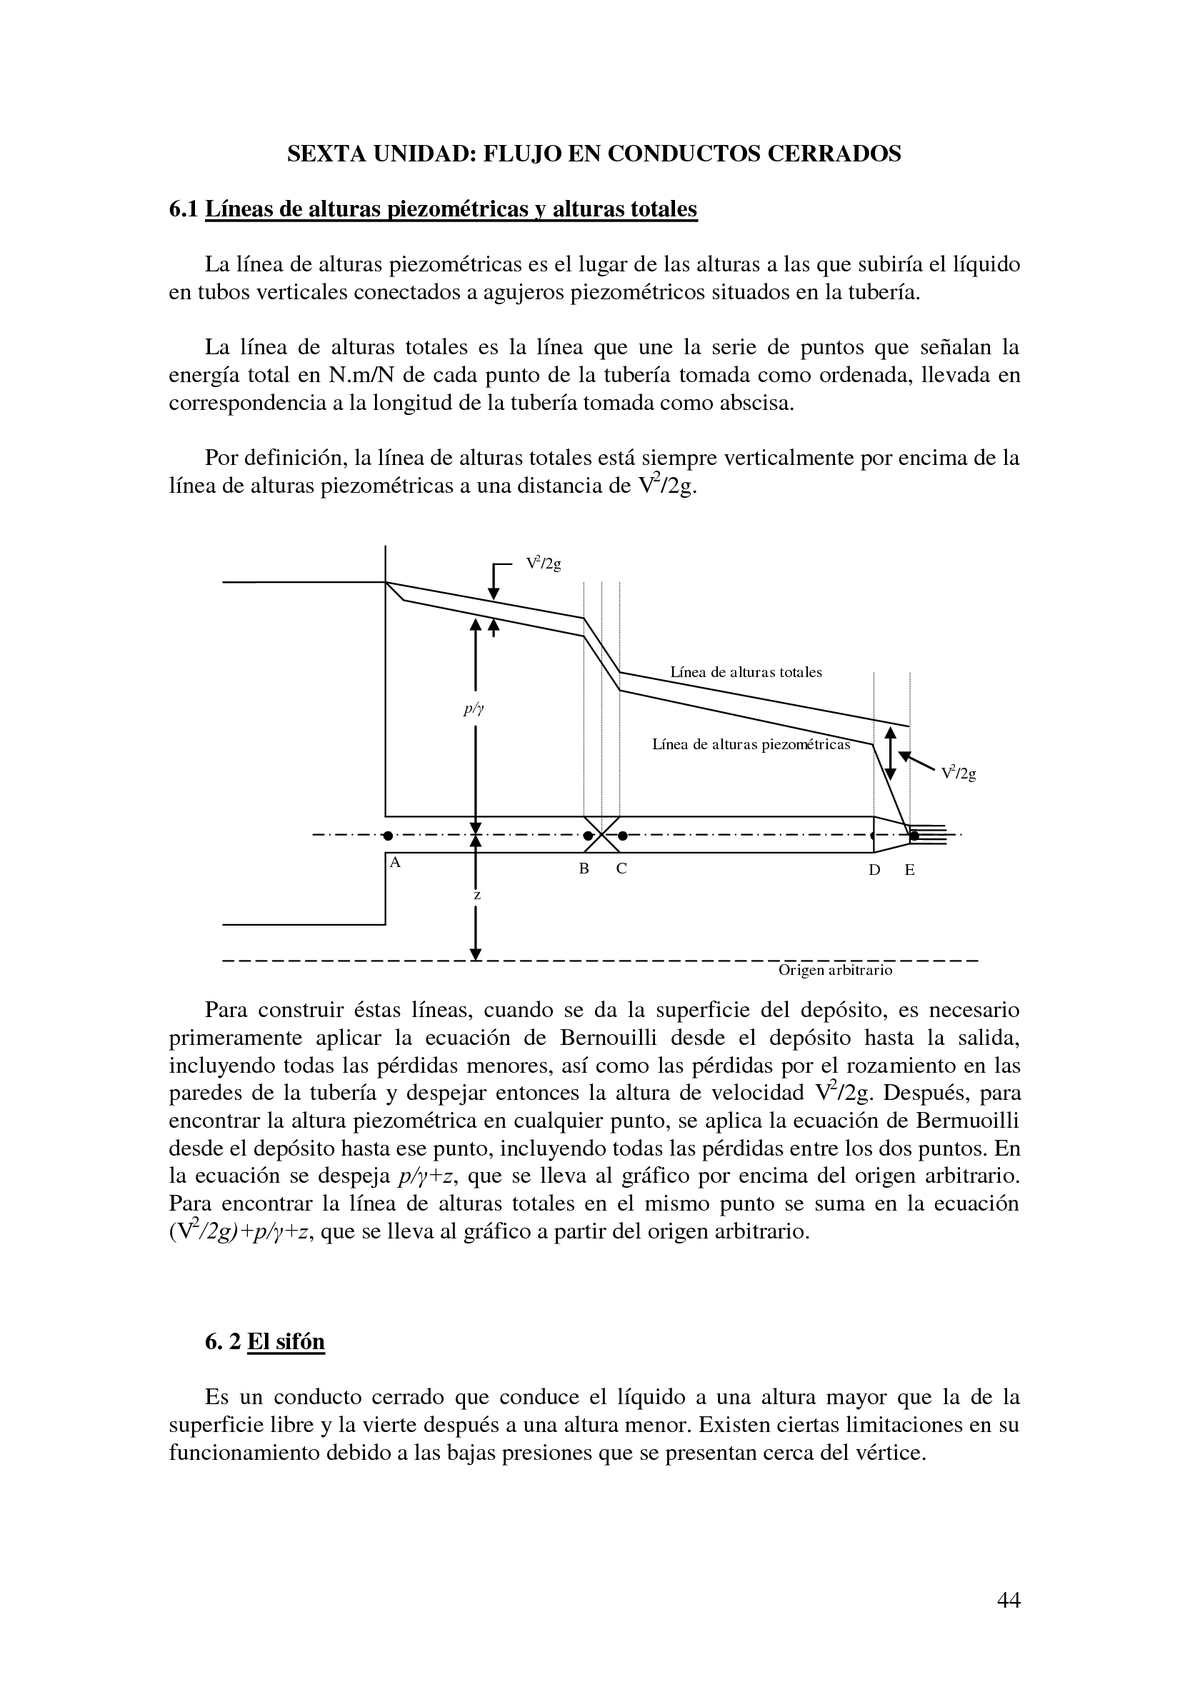 Page 44